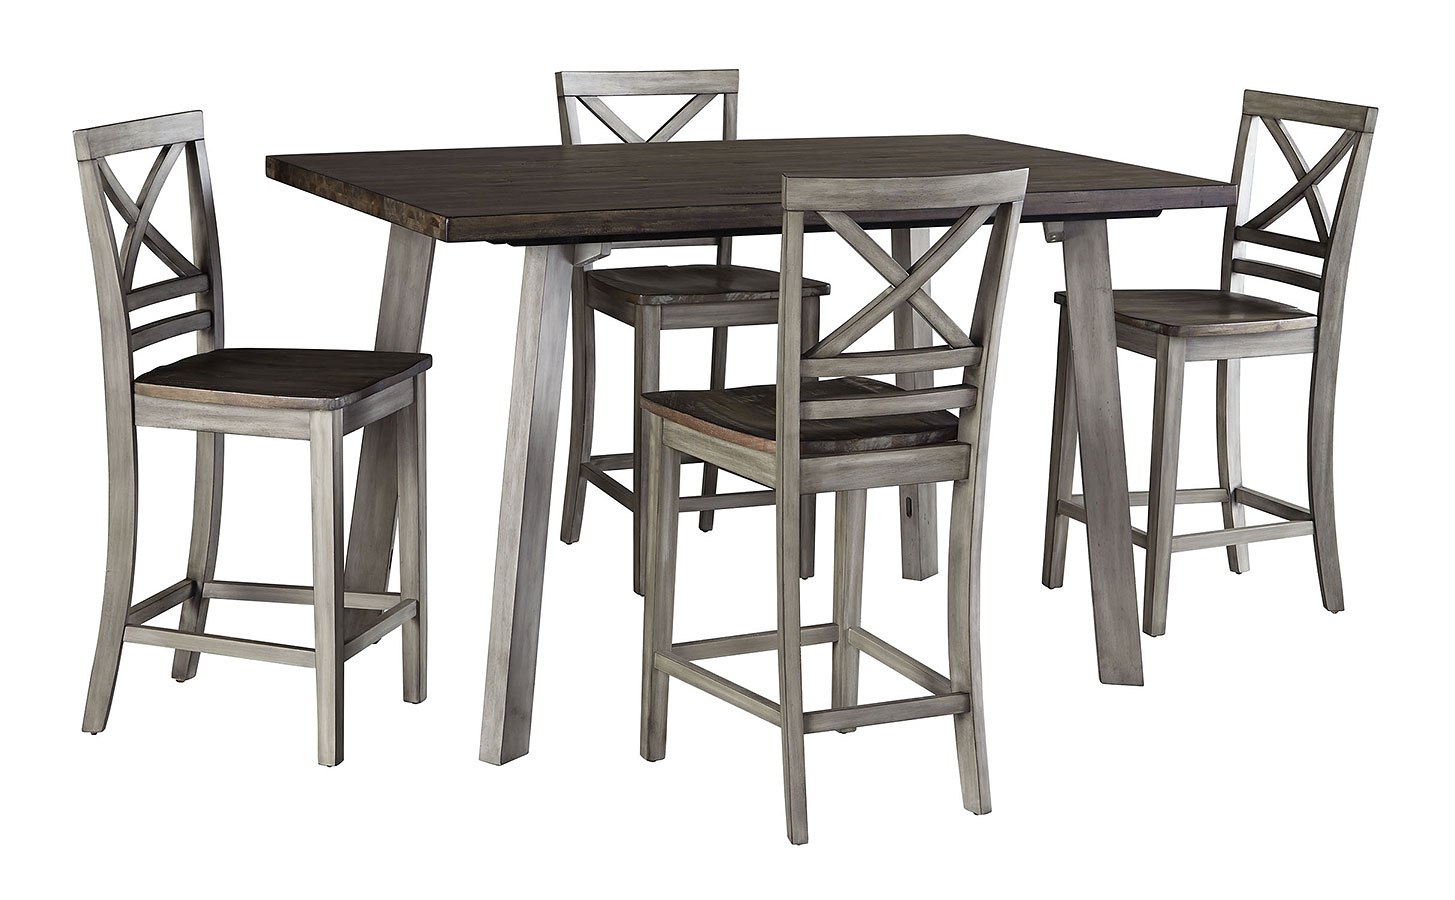 Fairhaven 5-Piece Counter Height Dining Set By Standard Furniture